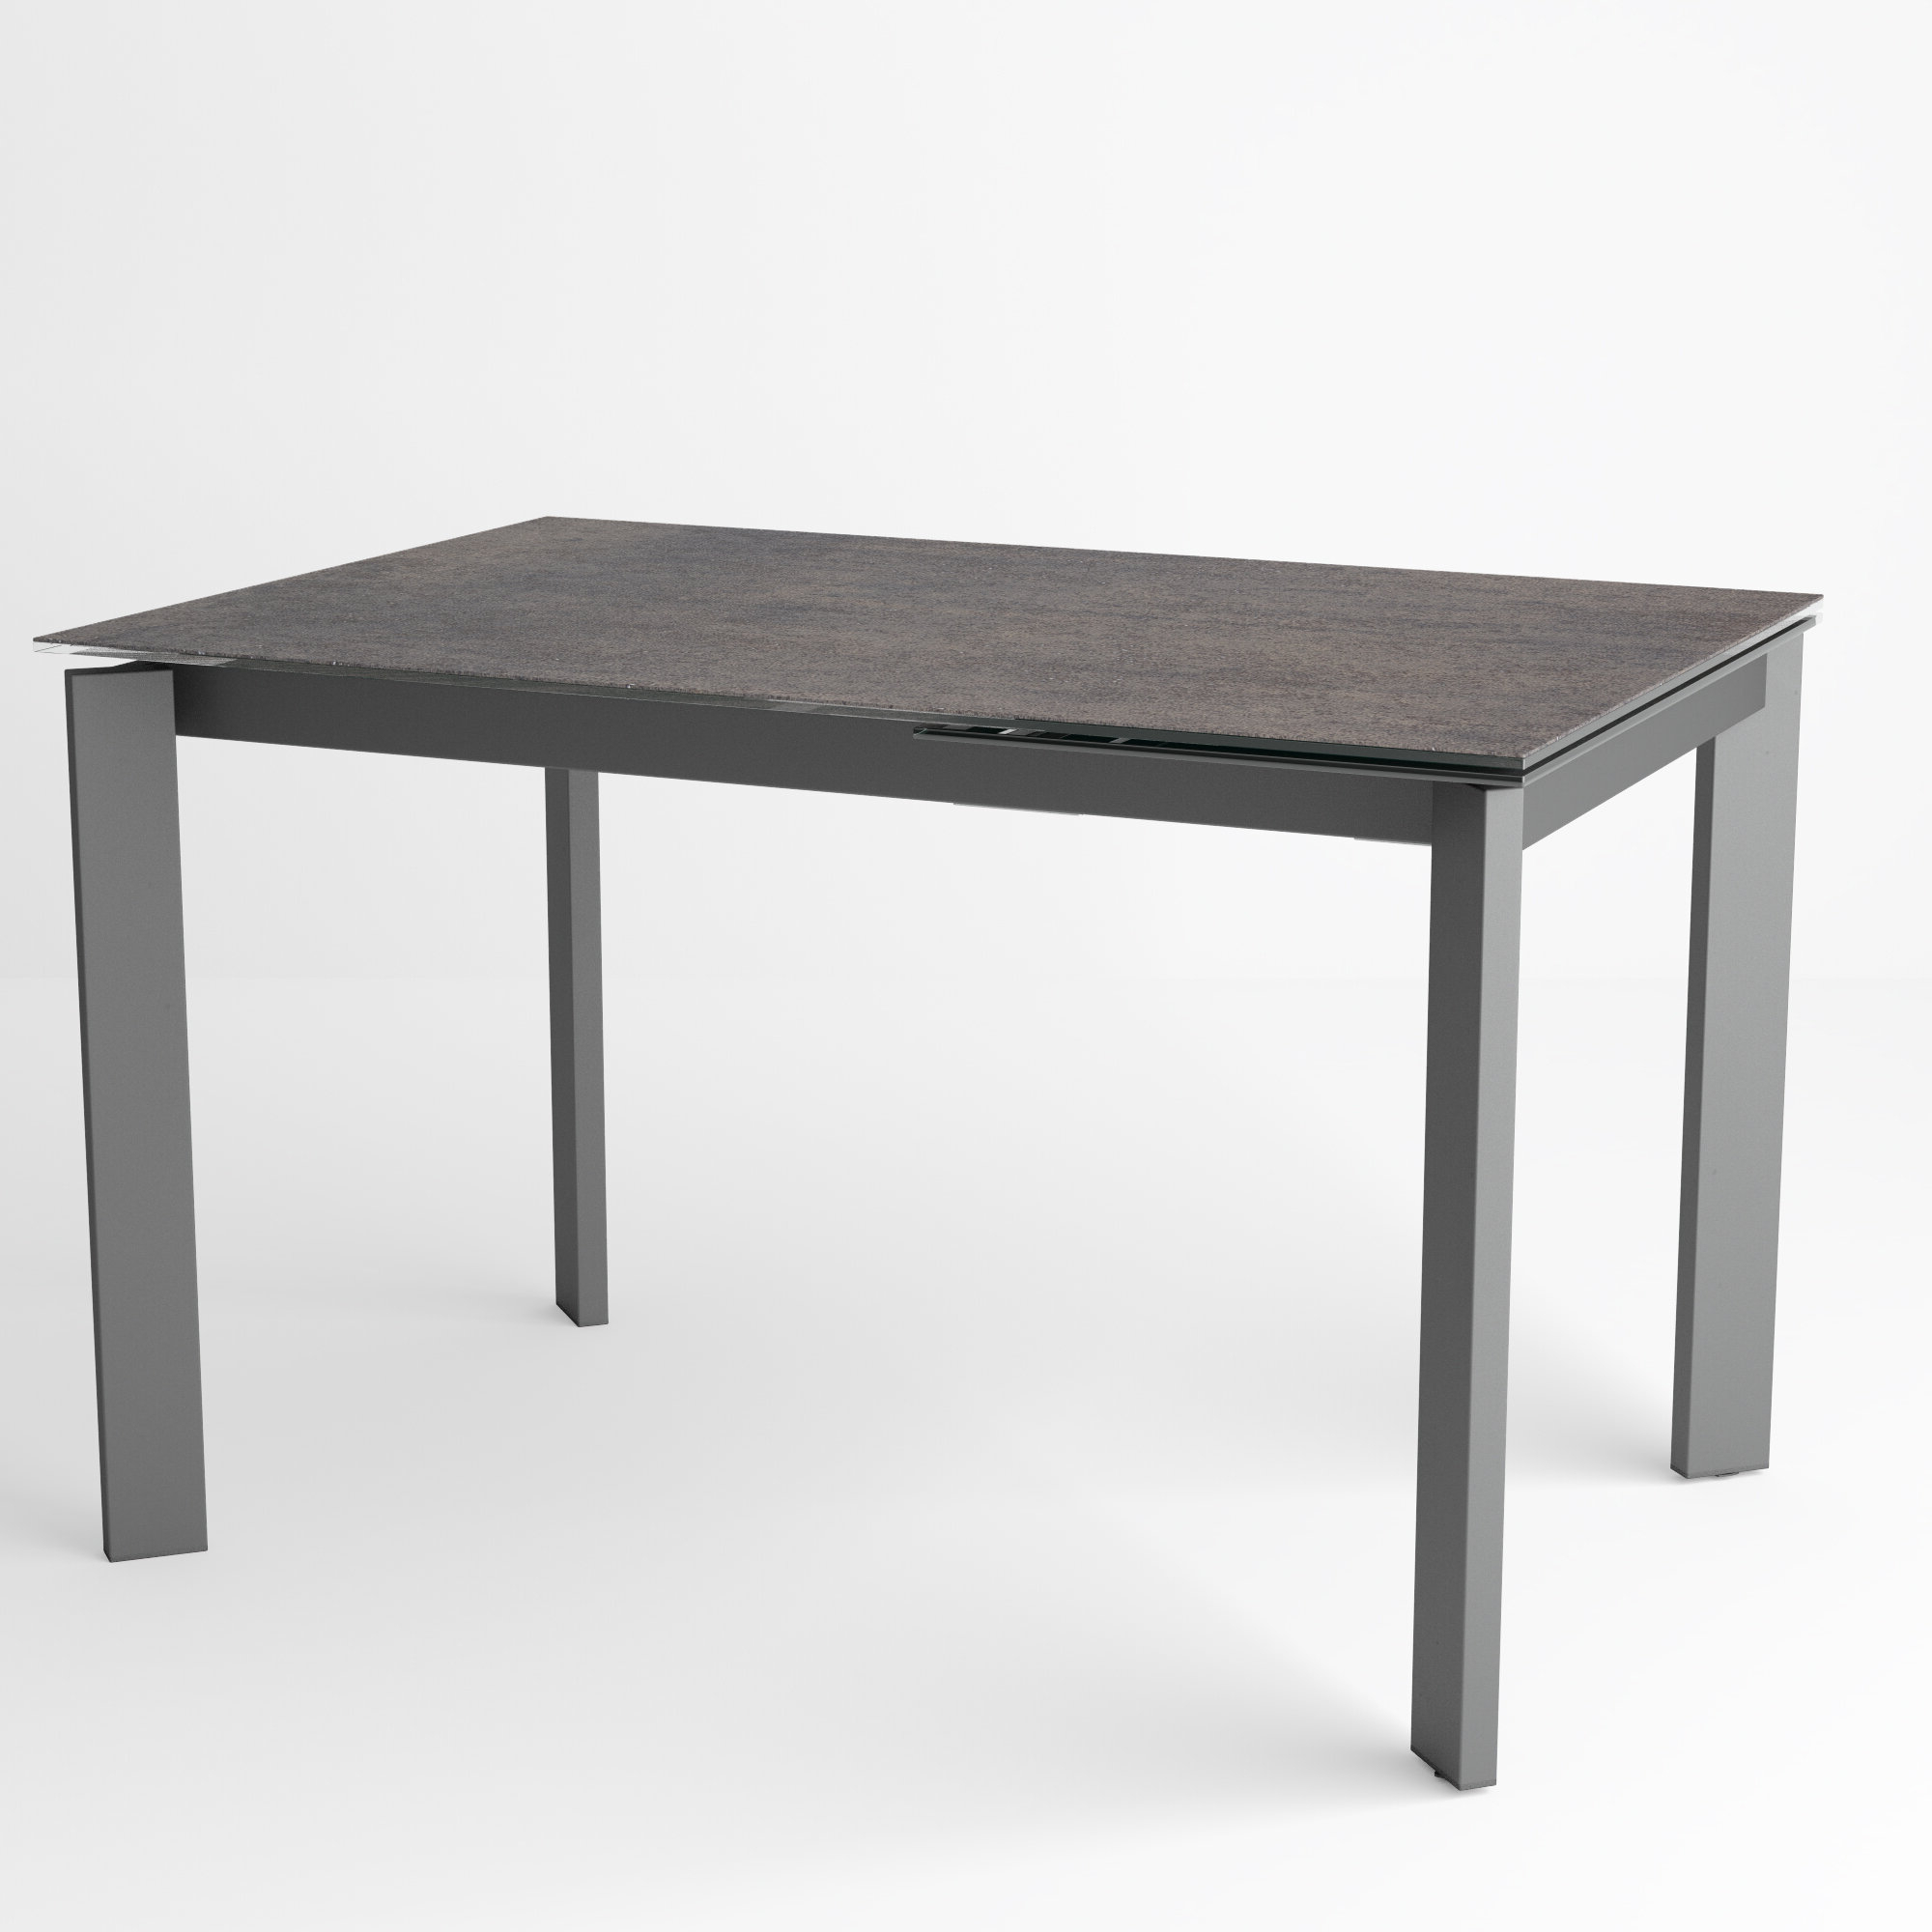 Fayean Extendable Dining Table Pertaining To Current Faye Dining Tables (View 12 of 25)